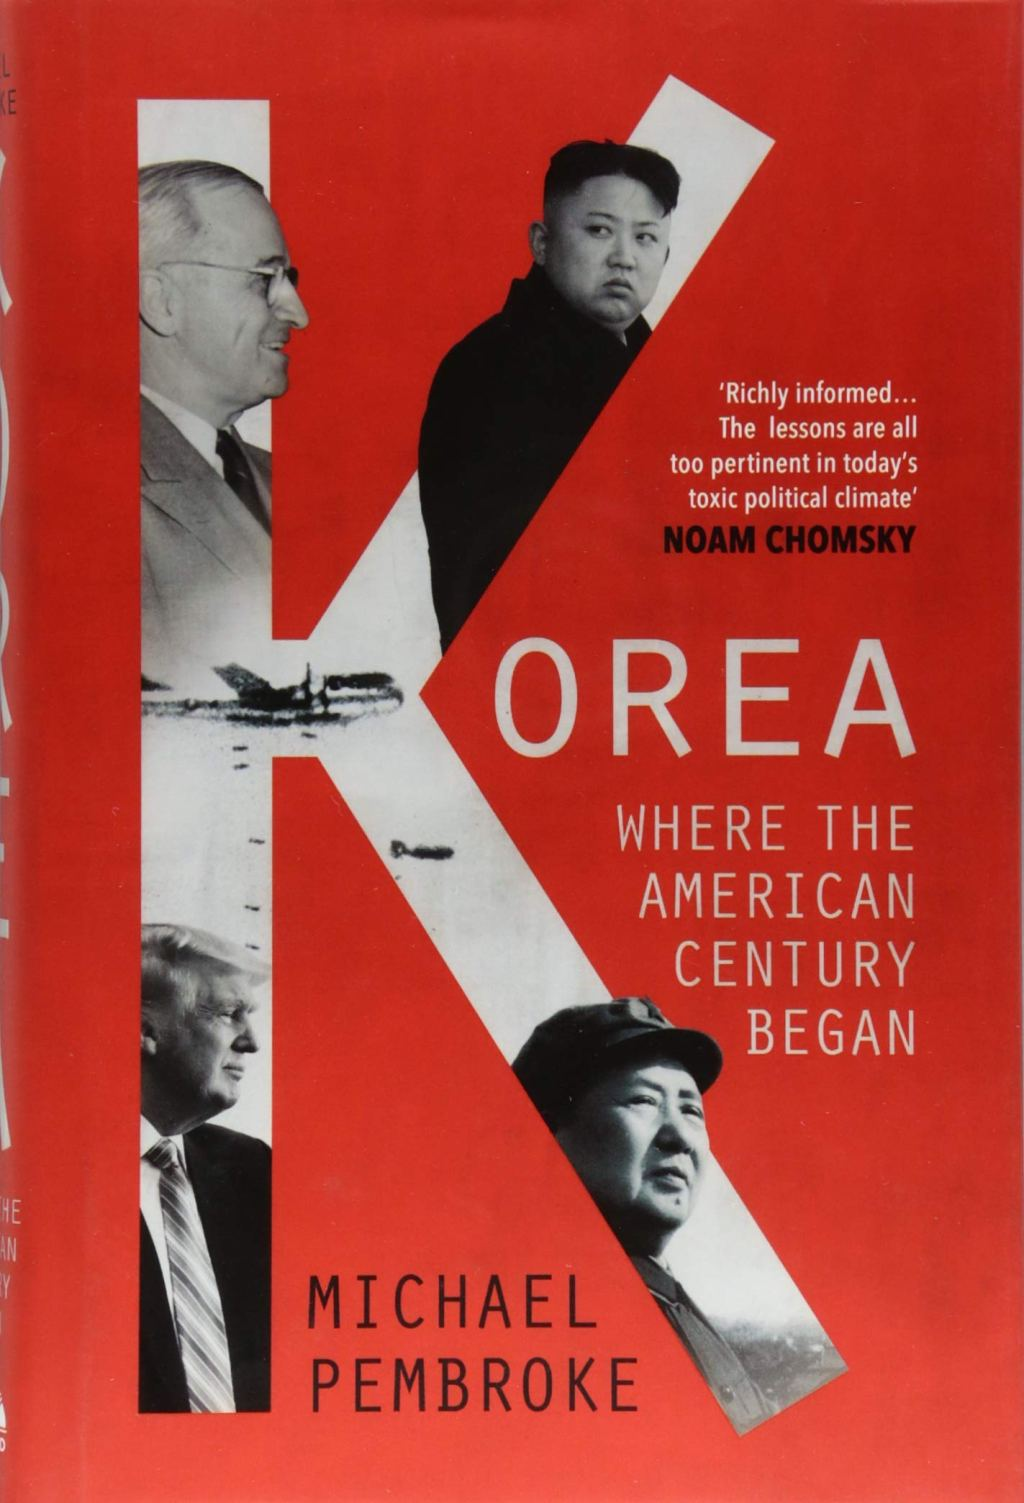 Korea: Where the American Century Began, Michael Pembroke (OneWorld, August 2018; Hardie Grant, February 2018)